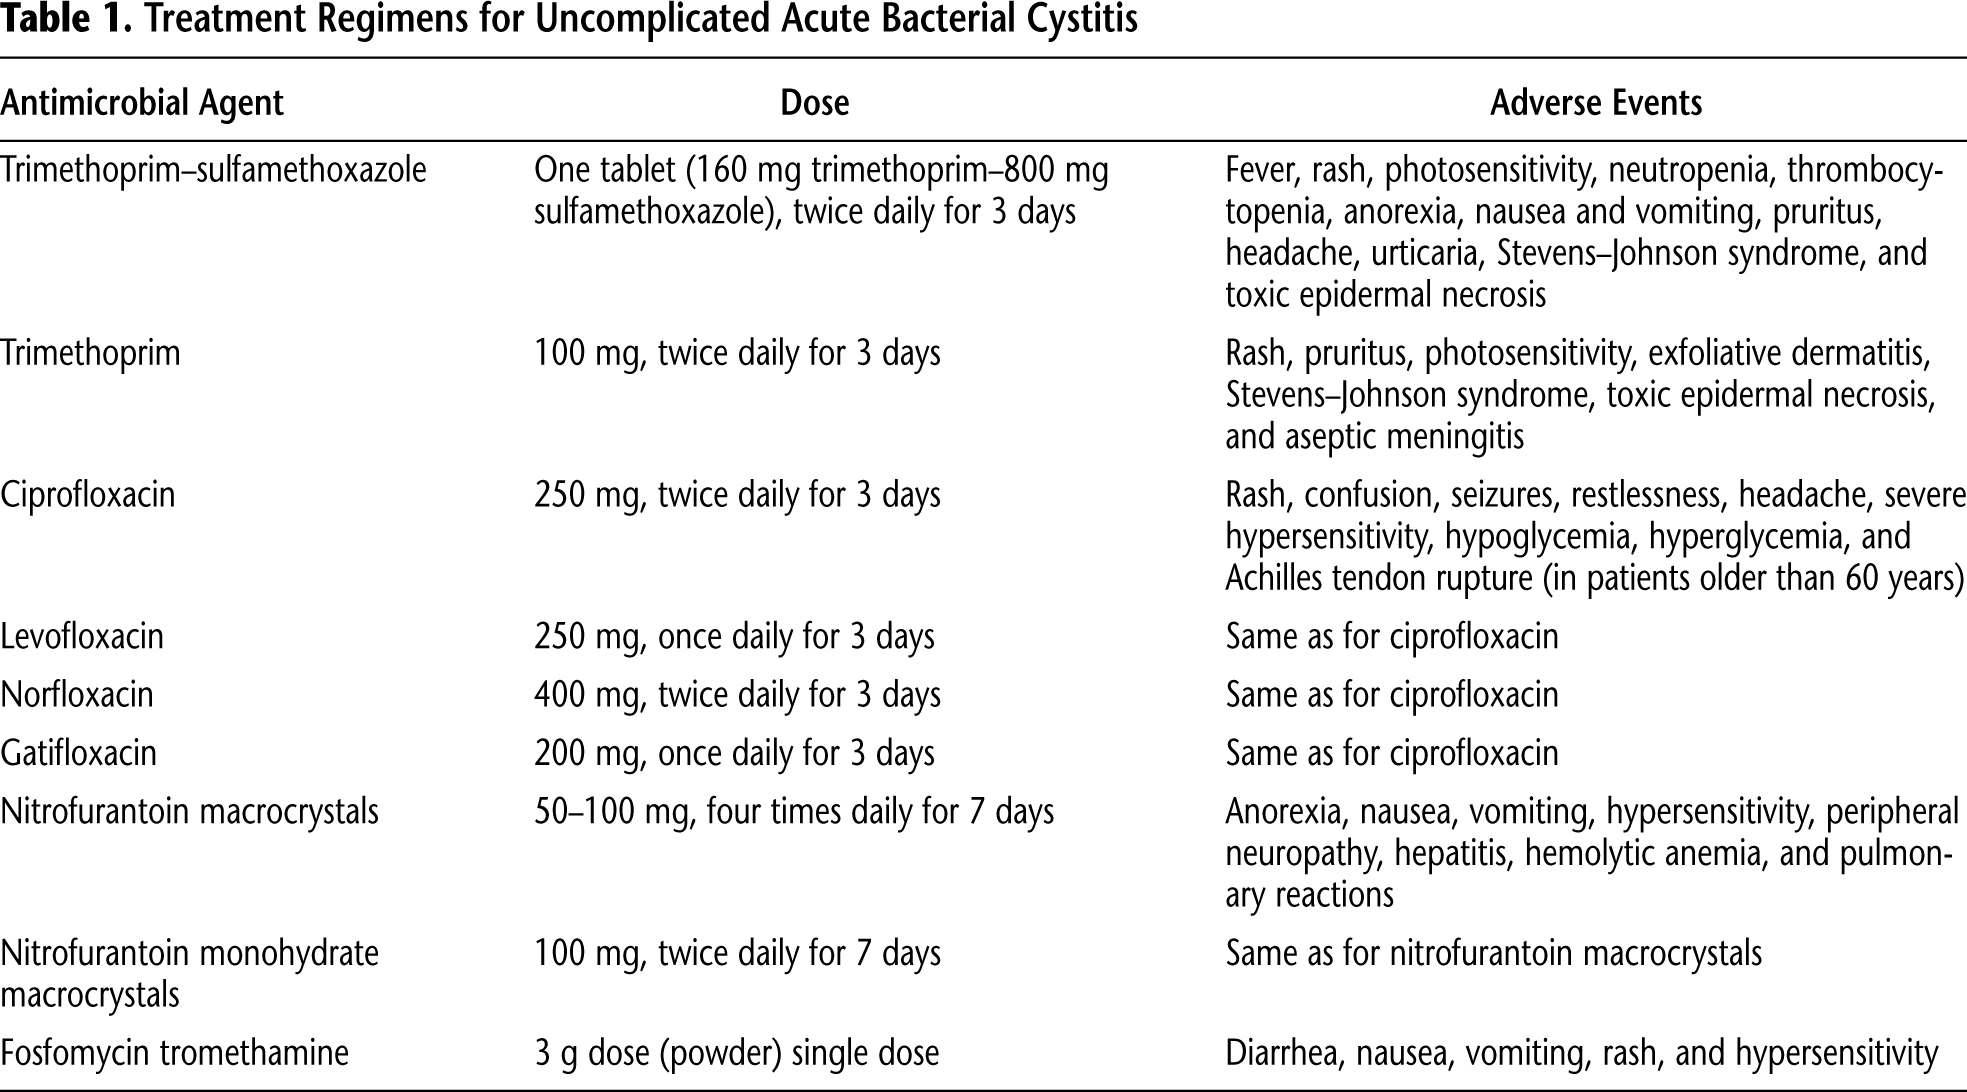 Treatment of Urinary Tract Infections in Nonpregnant Women